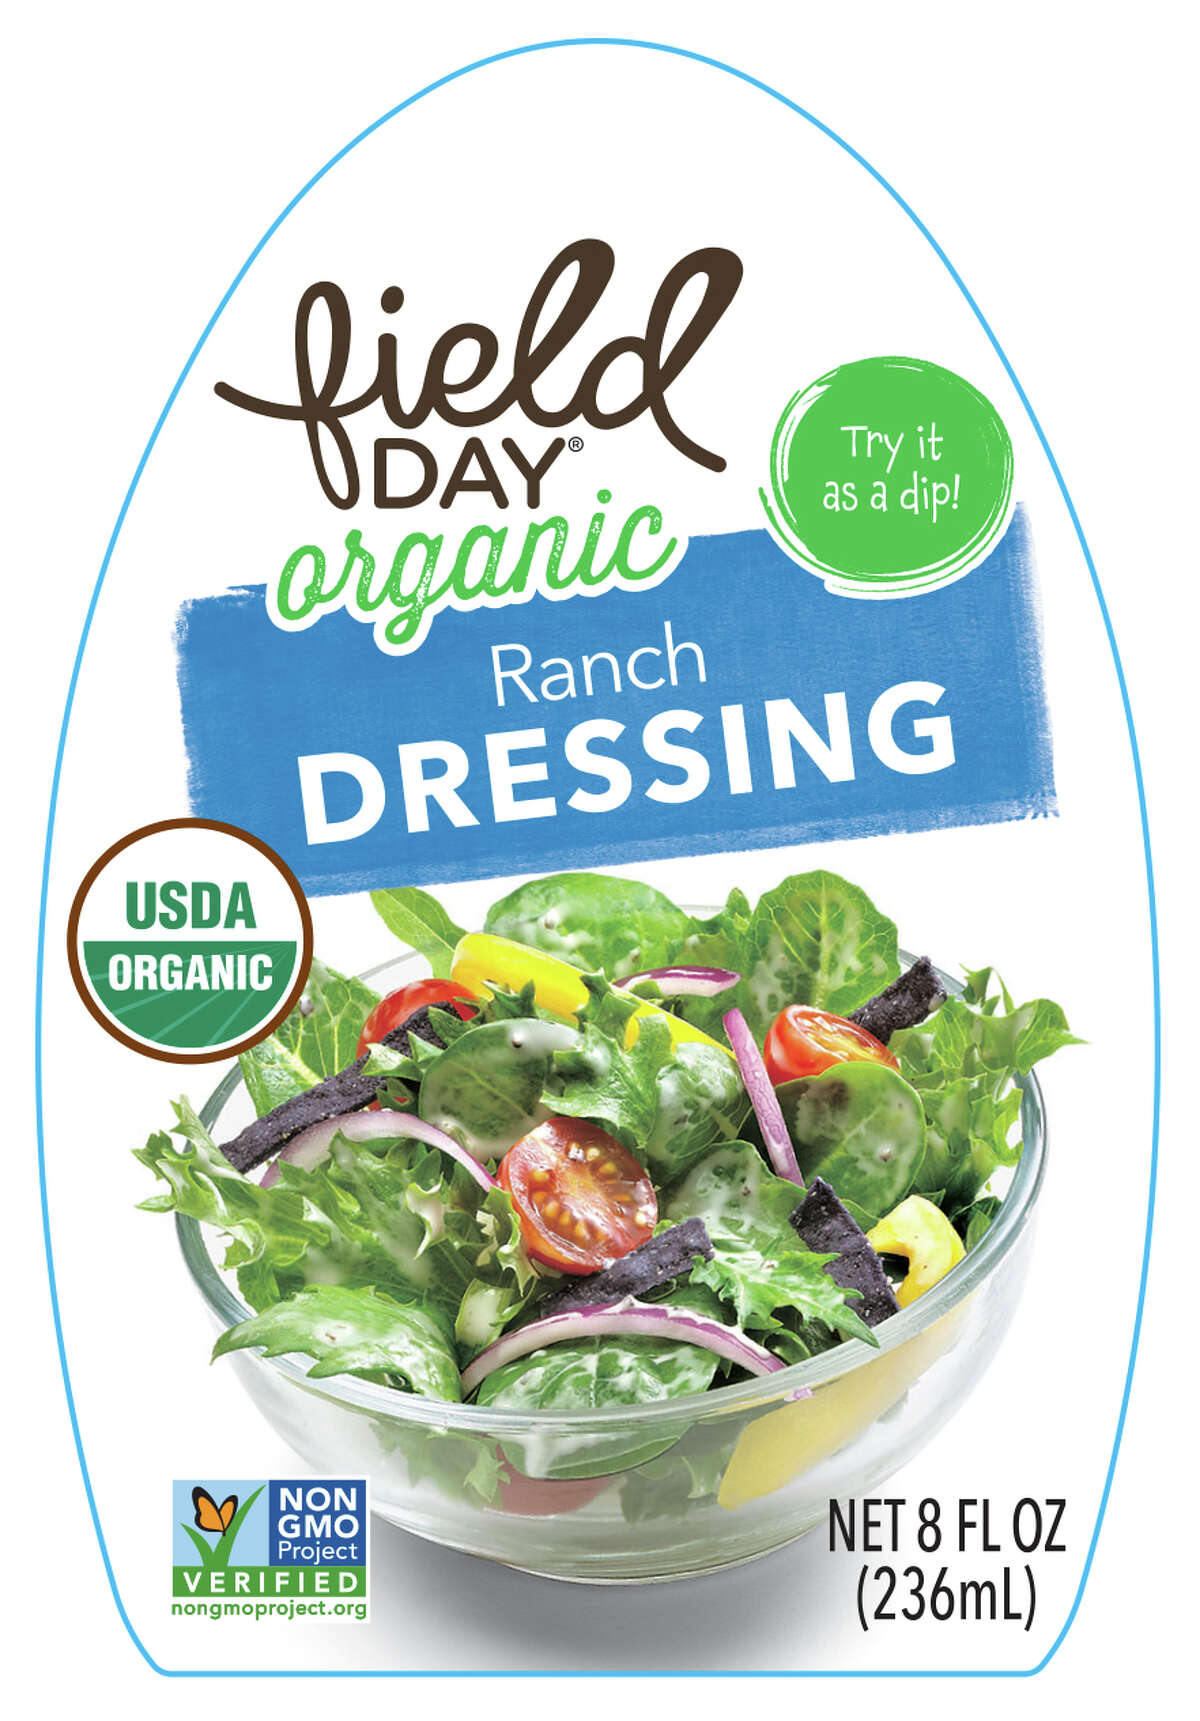 Vermont-based Drew's, LLC is voluntarily recalling one lot code of Field Day Organic Ranch Dressing due to product mislabeling that has resulted in an undeclared milk and egg allergen. Photo courtesy of the U.S. Food and Drug Administration.